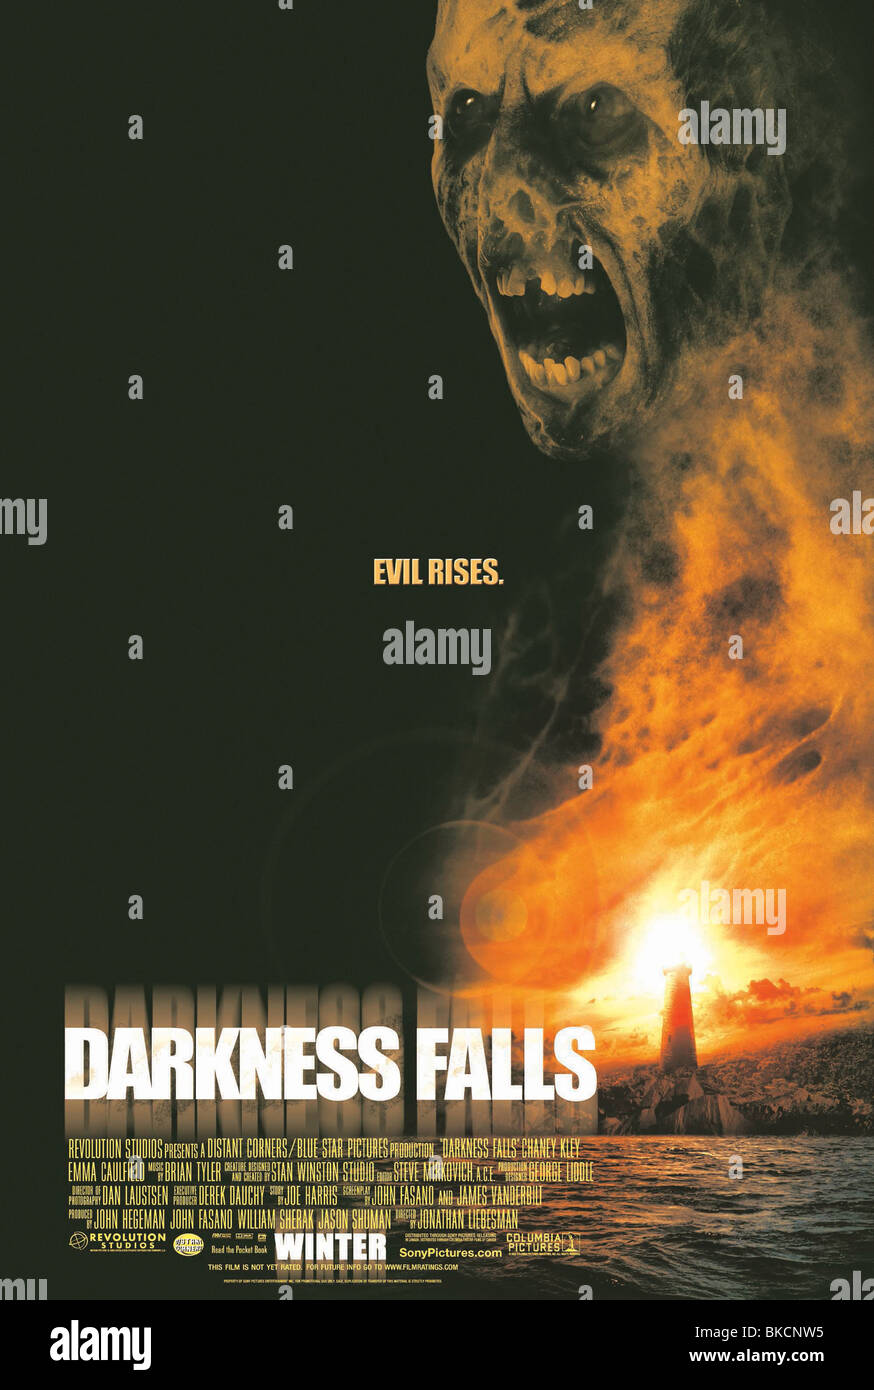 DARKNESS FALLS (2003) POSTER DAFA 001-POST - Stock Image